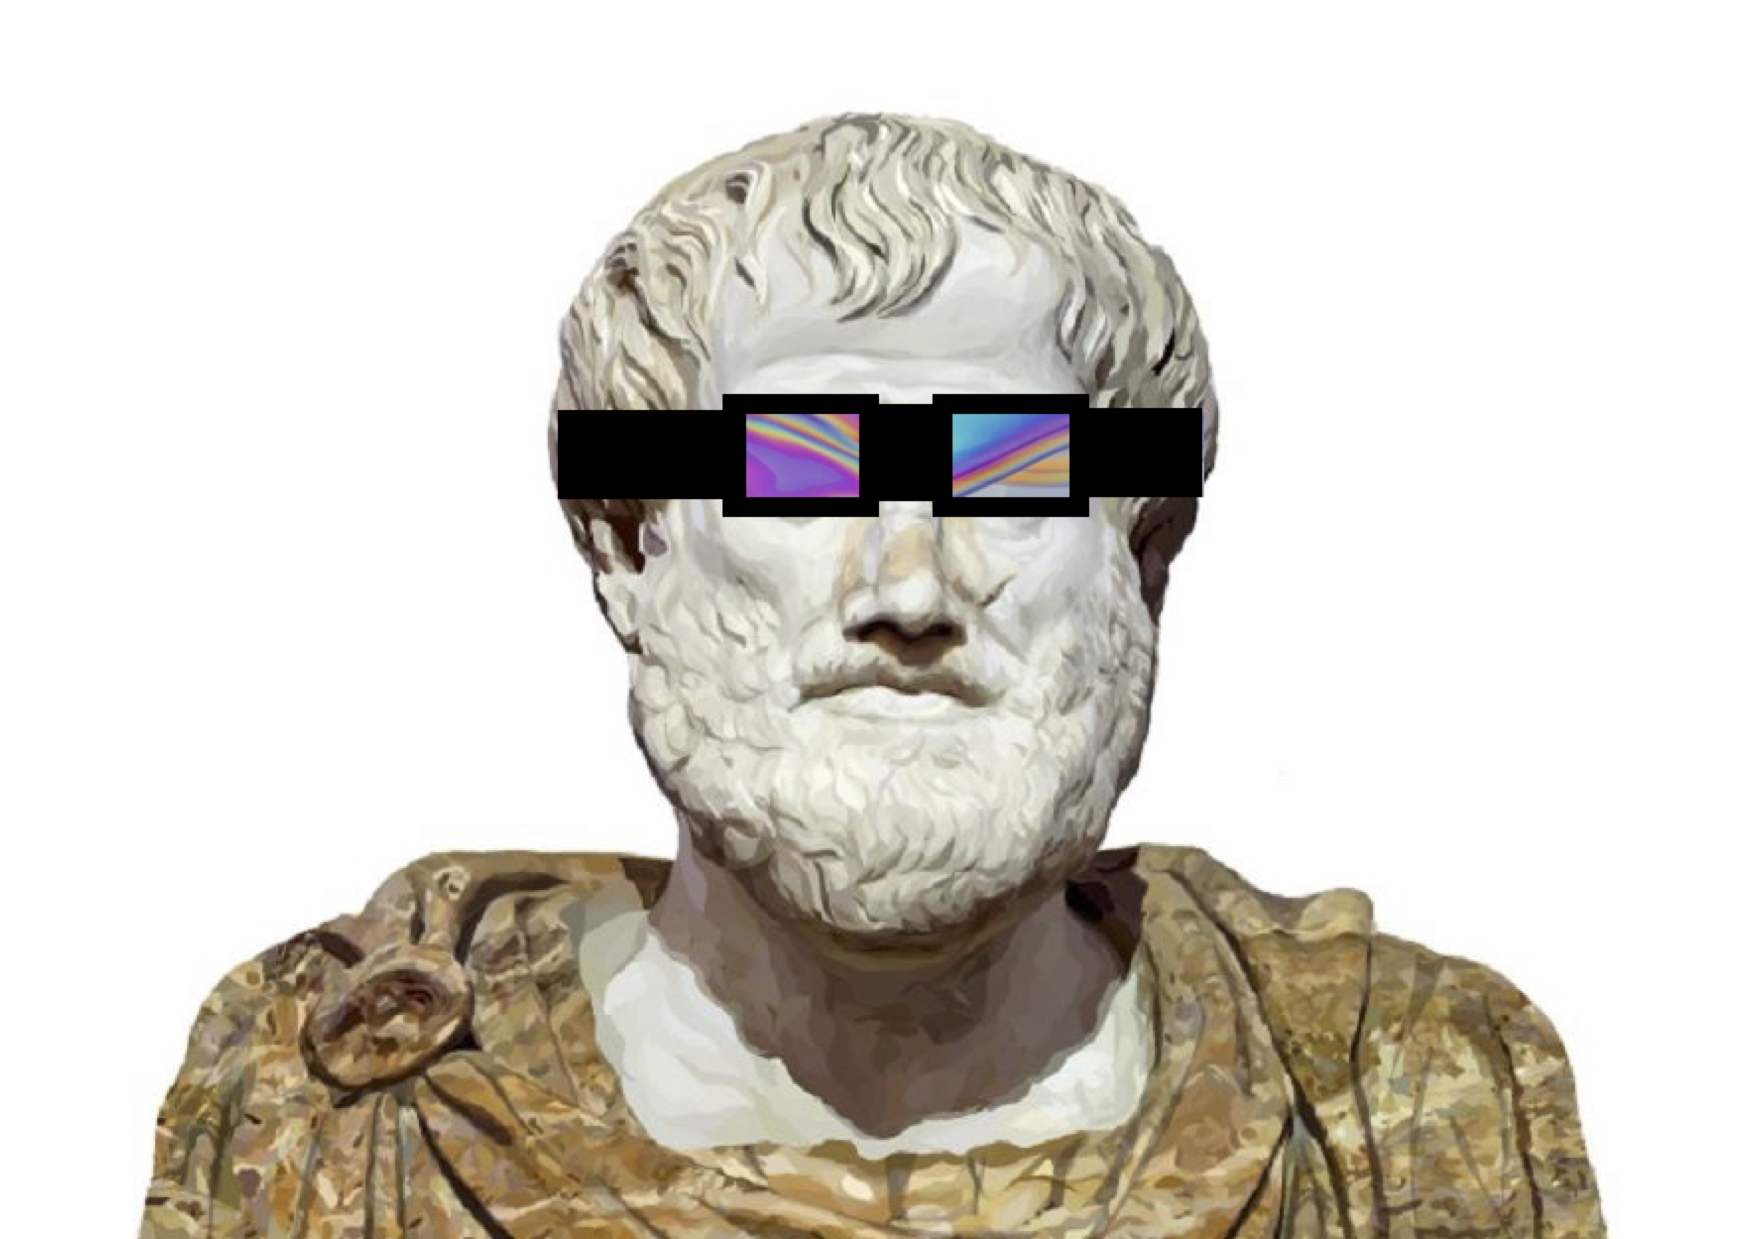 In his lecture to doctoral students at the University of Seville, Dr. Segovia used the metaphor of Aristotle wearing iridescent glasses, which blur the boundaries between the colors, to demonstrate the impression that indigenous animist worlds give as collections of embodied yet shifting perspectives.